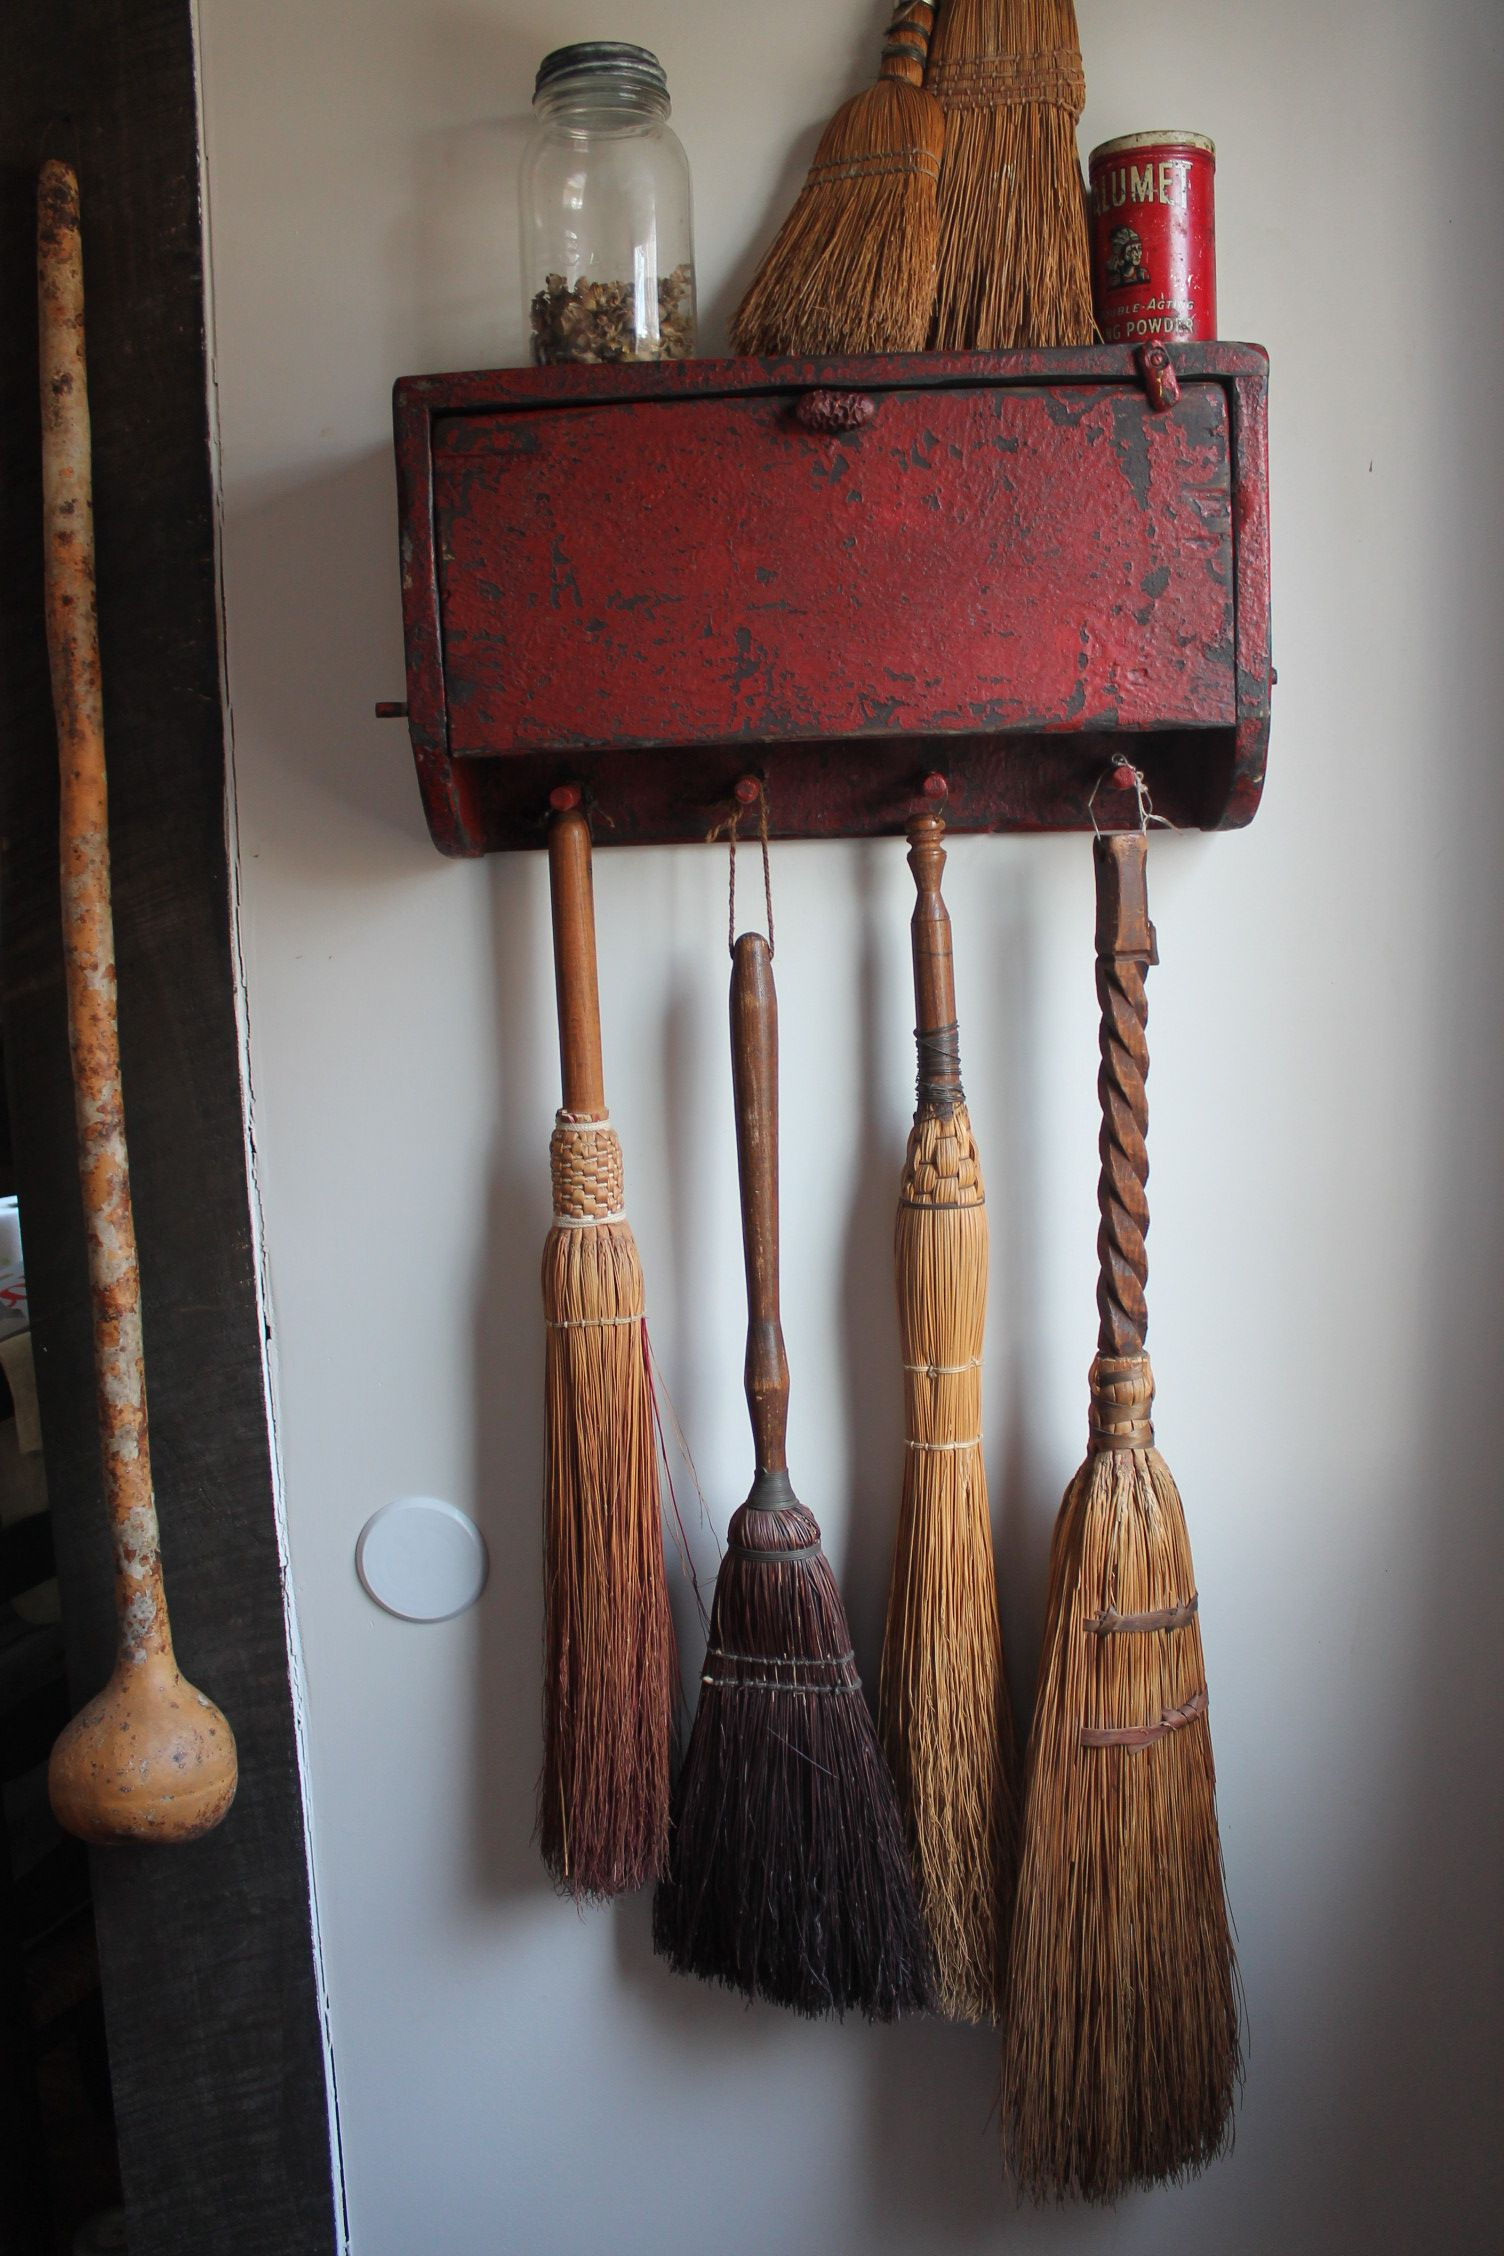 Pin by Johnny Chan on Wicca | Whisk broom, Brooms, brushes